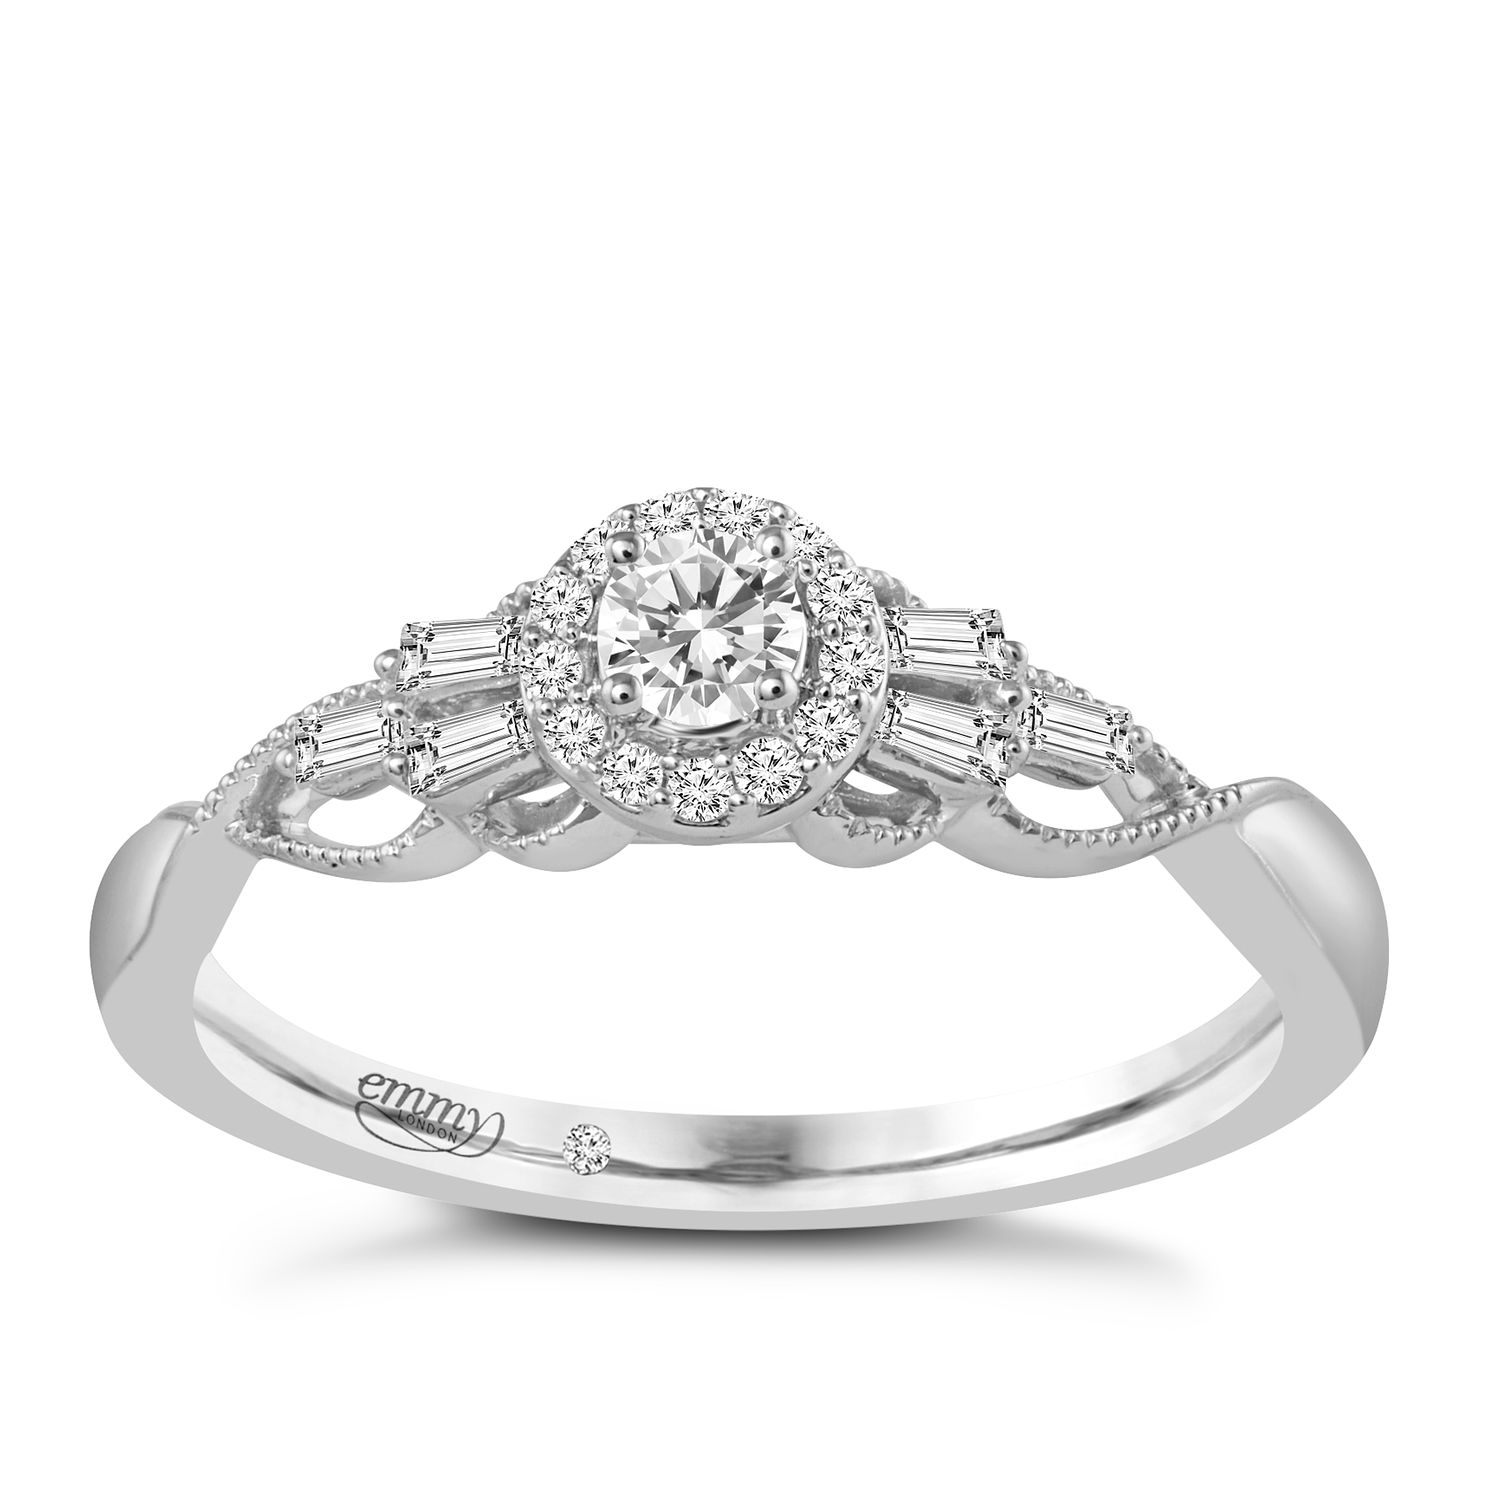 Emmy London 18ct White Gold 1/4 Carat Diamond Halo Ring - Product number 6048374